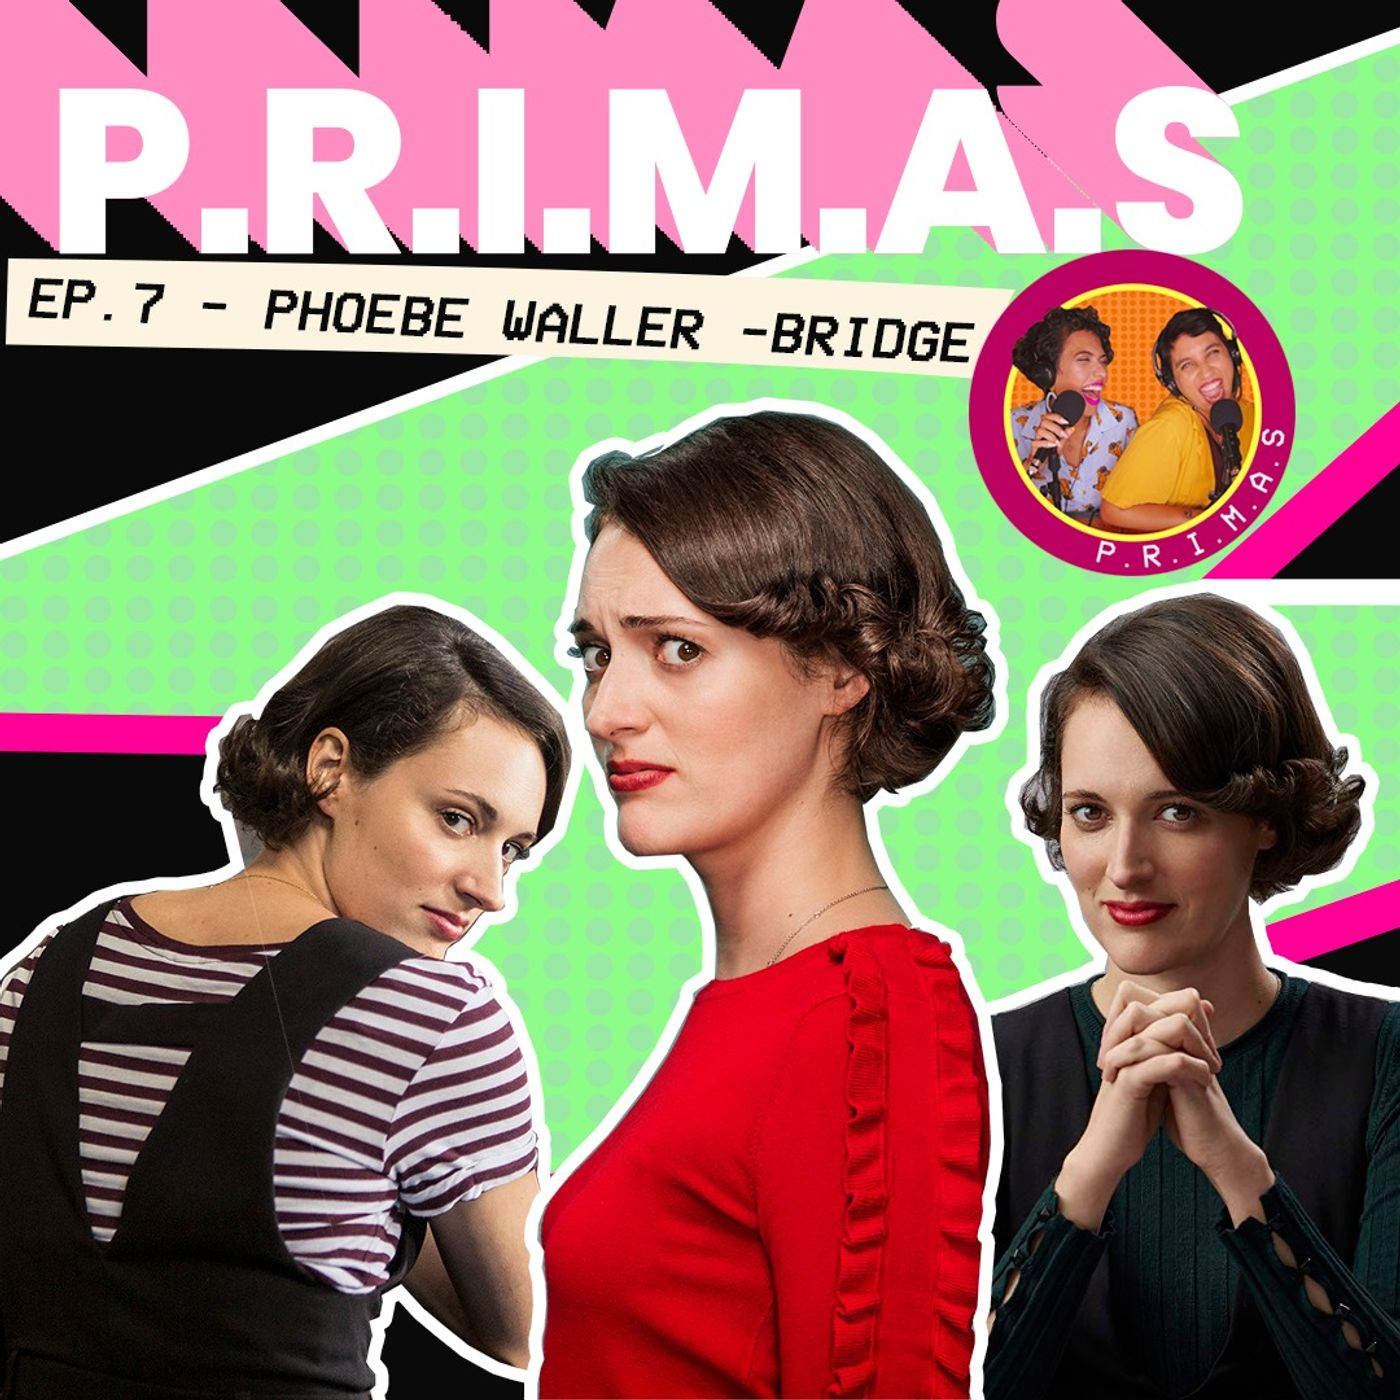 #7 - Phoebe Waller-Bridge, a criadora do momento em Hollywood